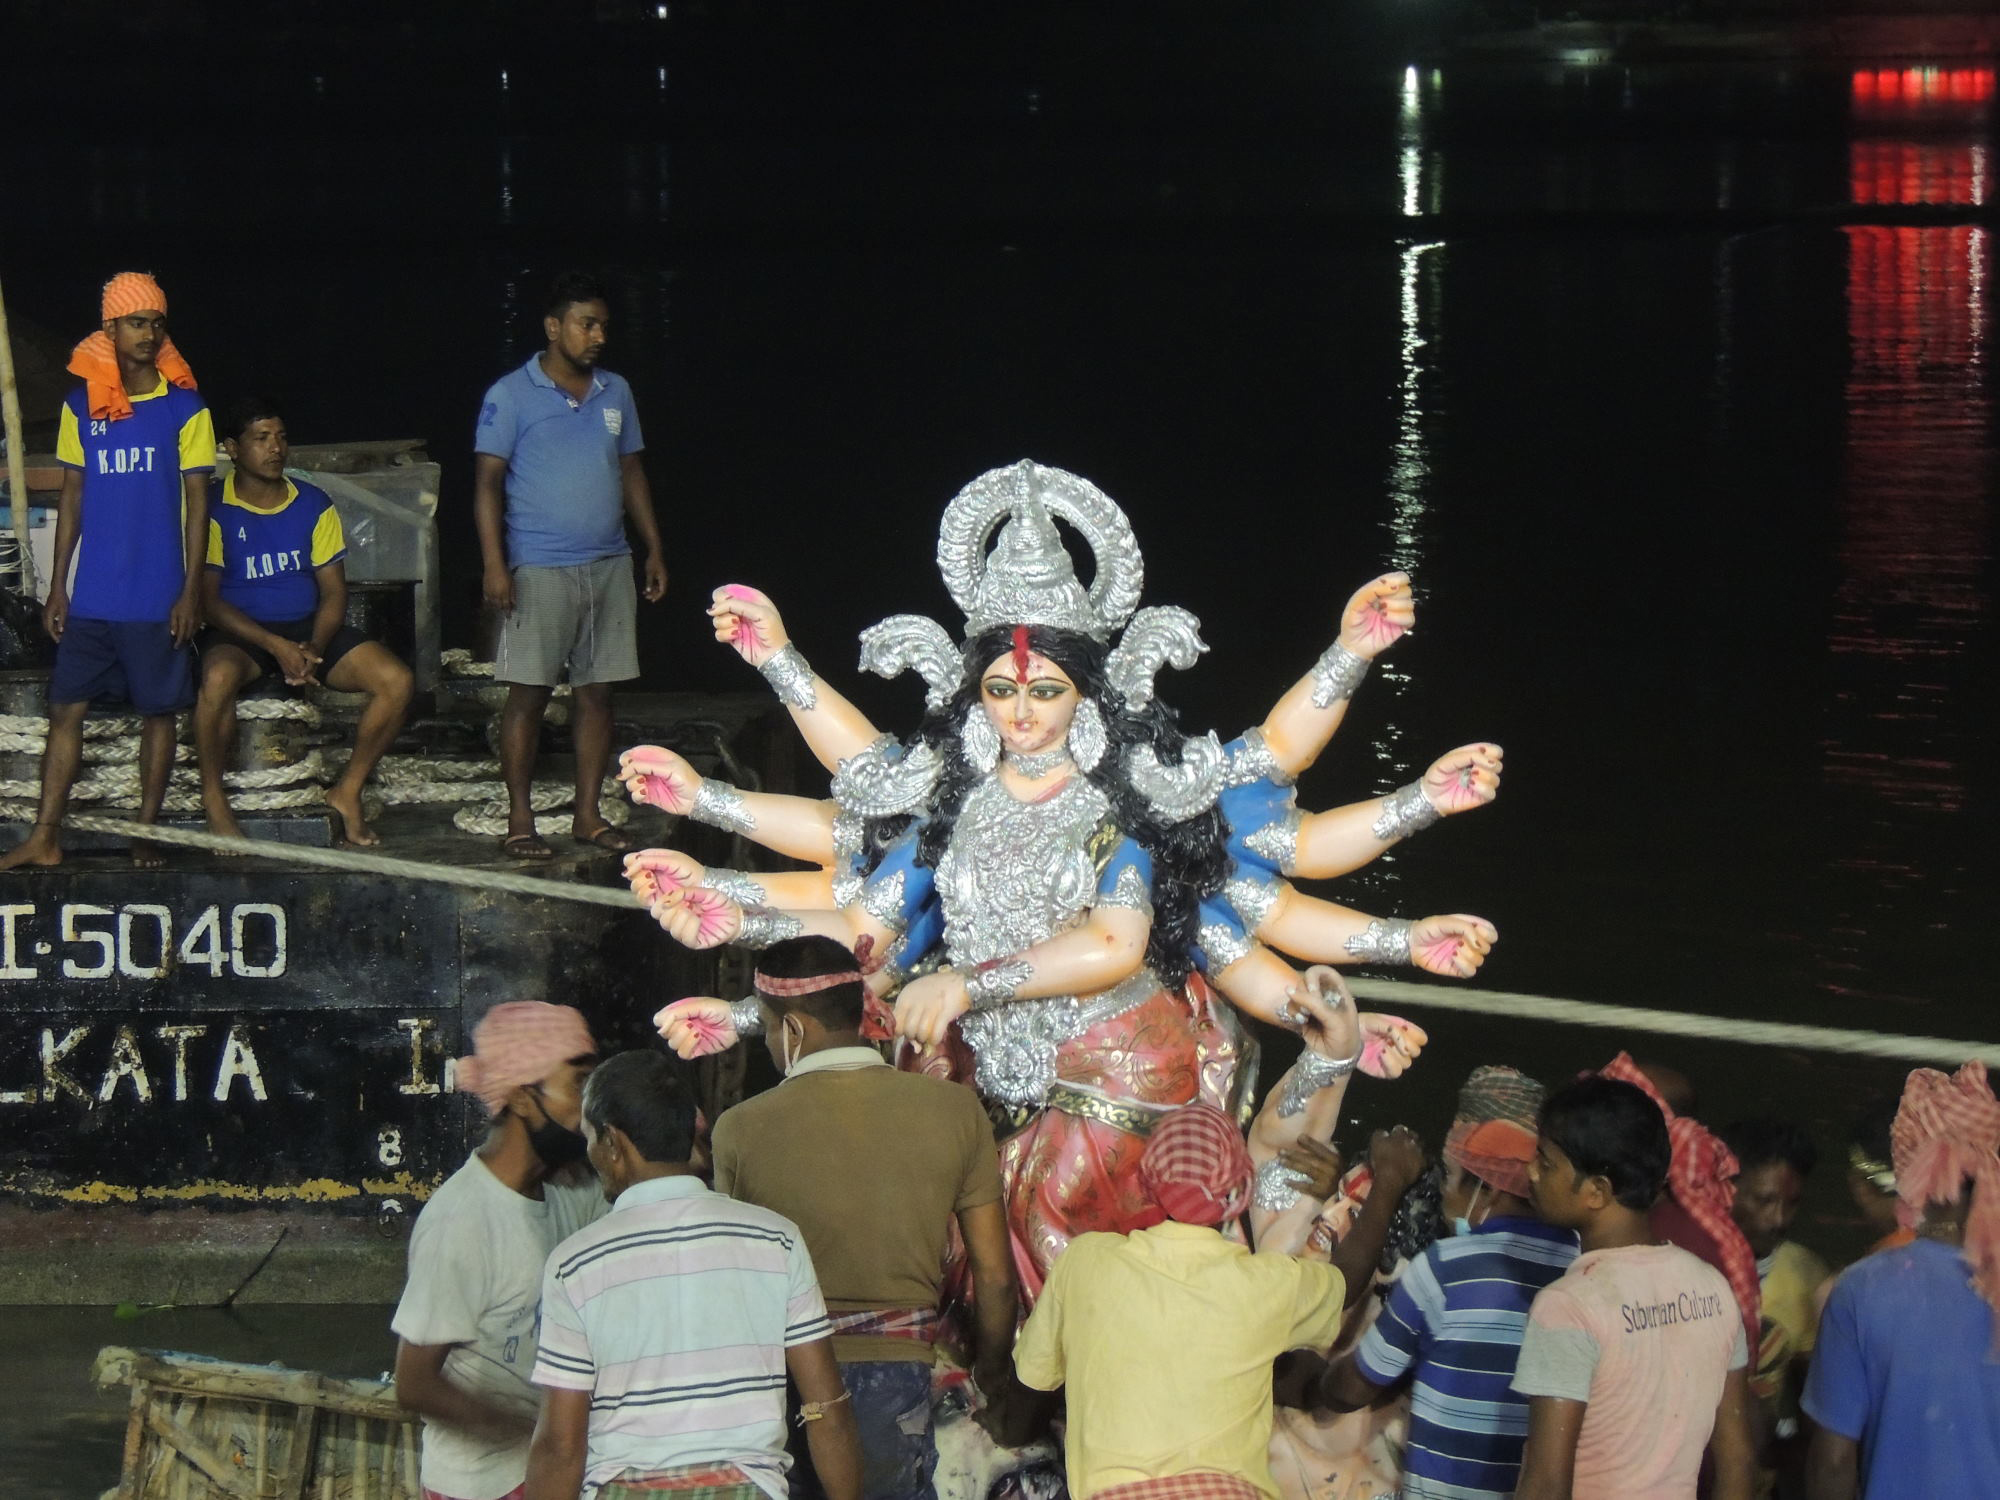 idol immersion scene on the bank of the Hooghly in Kolkata [Image by: Jayanta Basu]